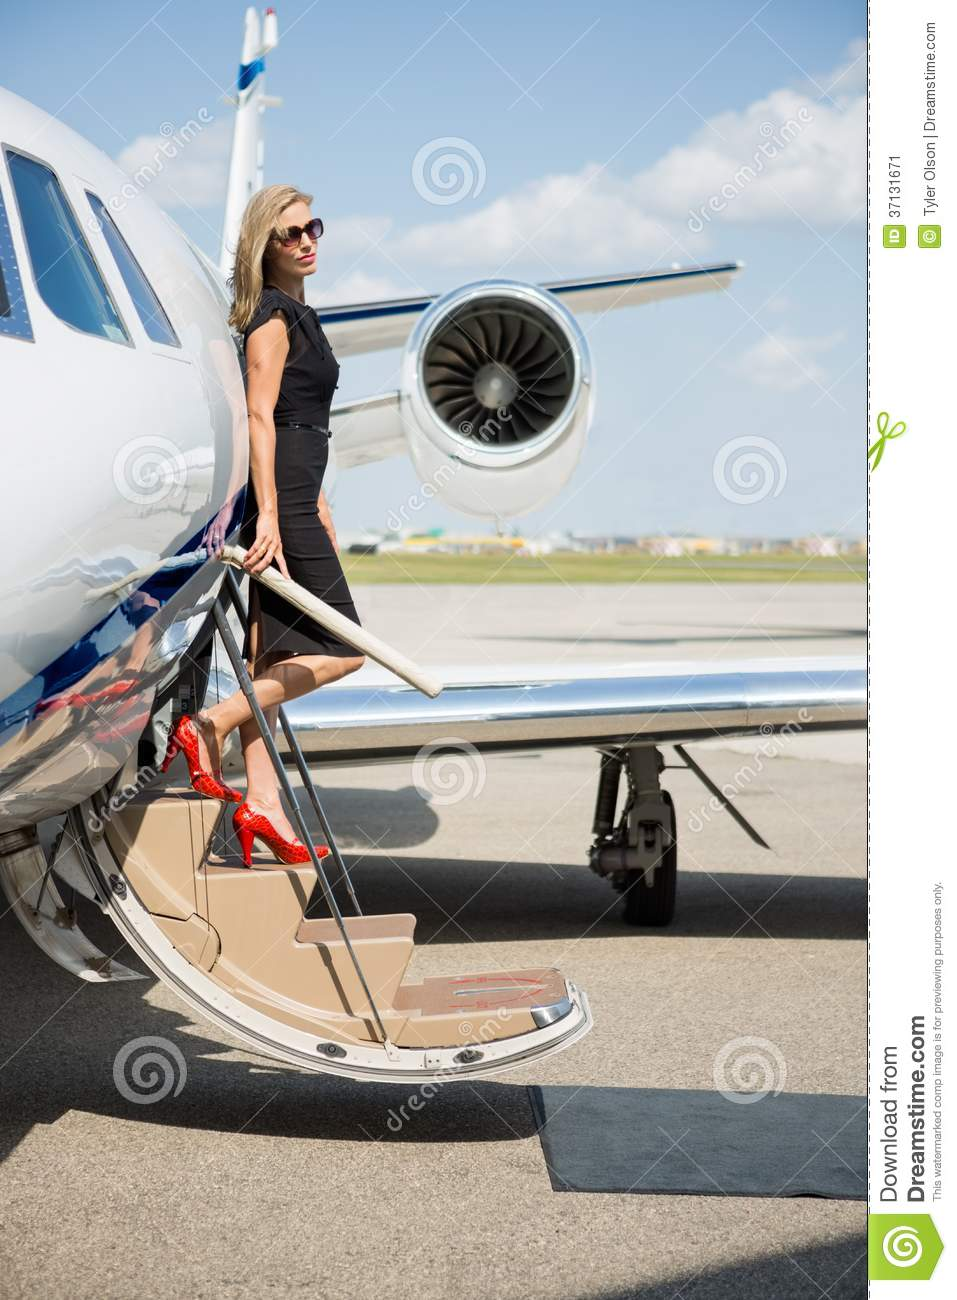 Rich Woman Disembarking Private Jet Stock Image.